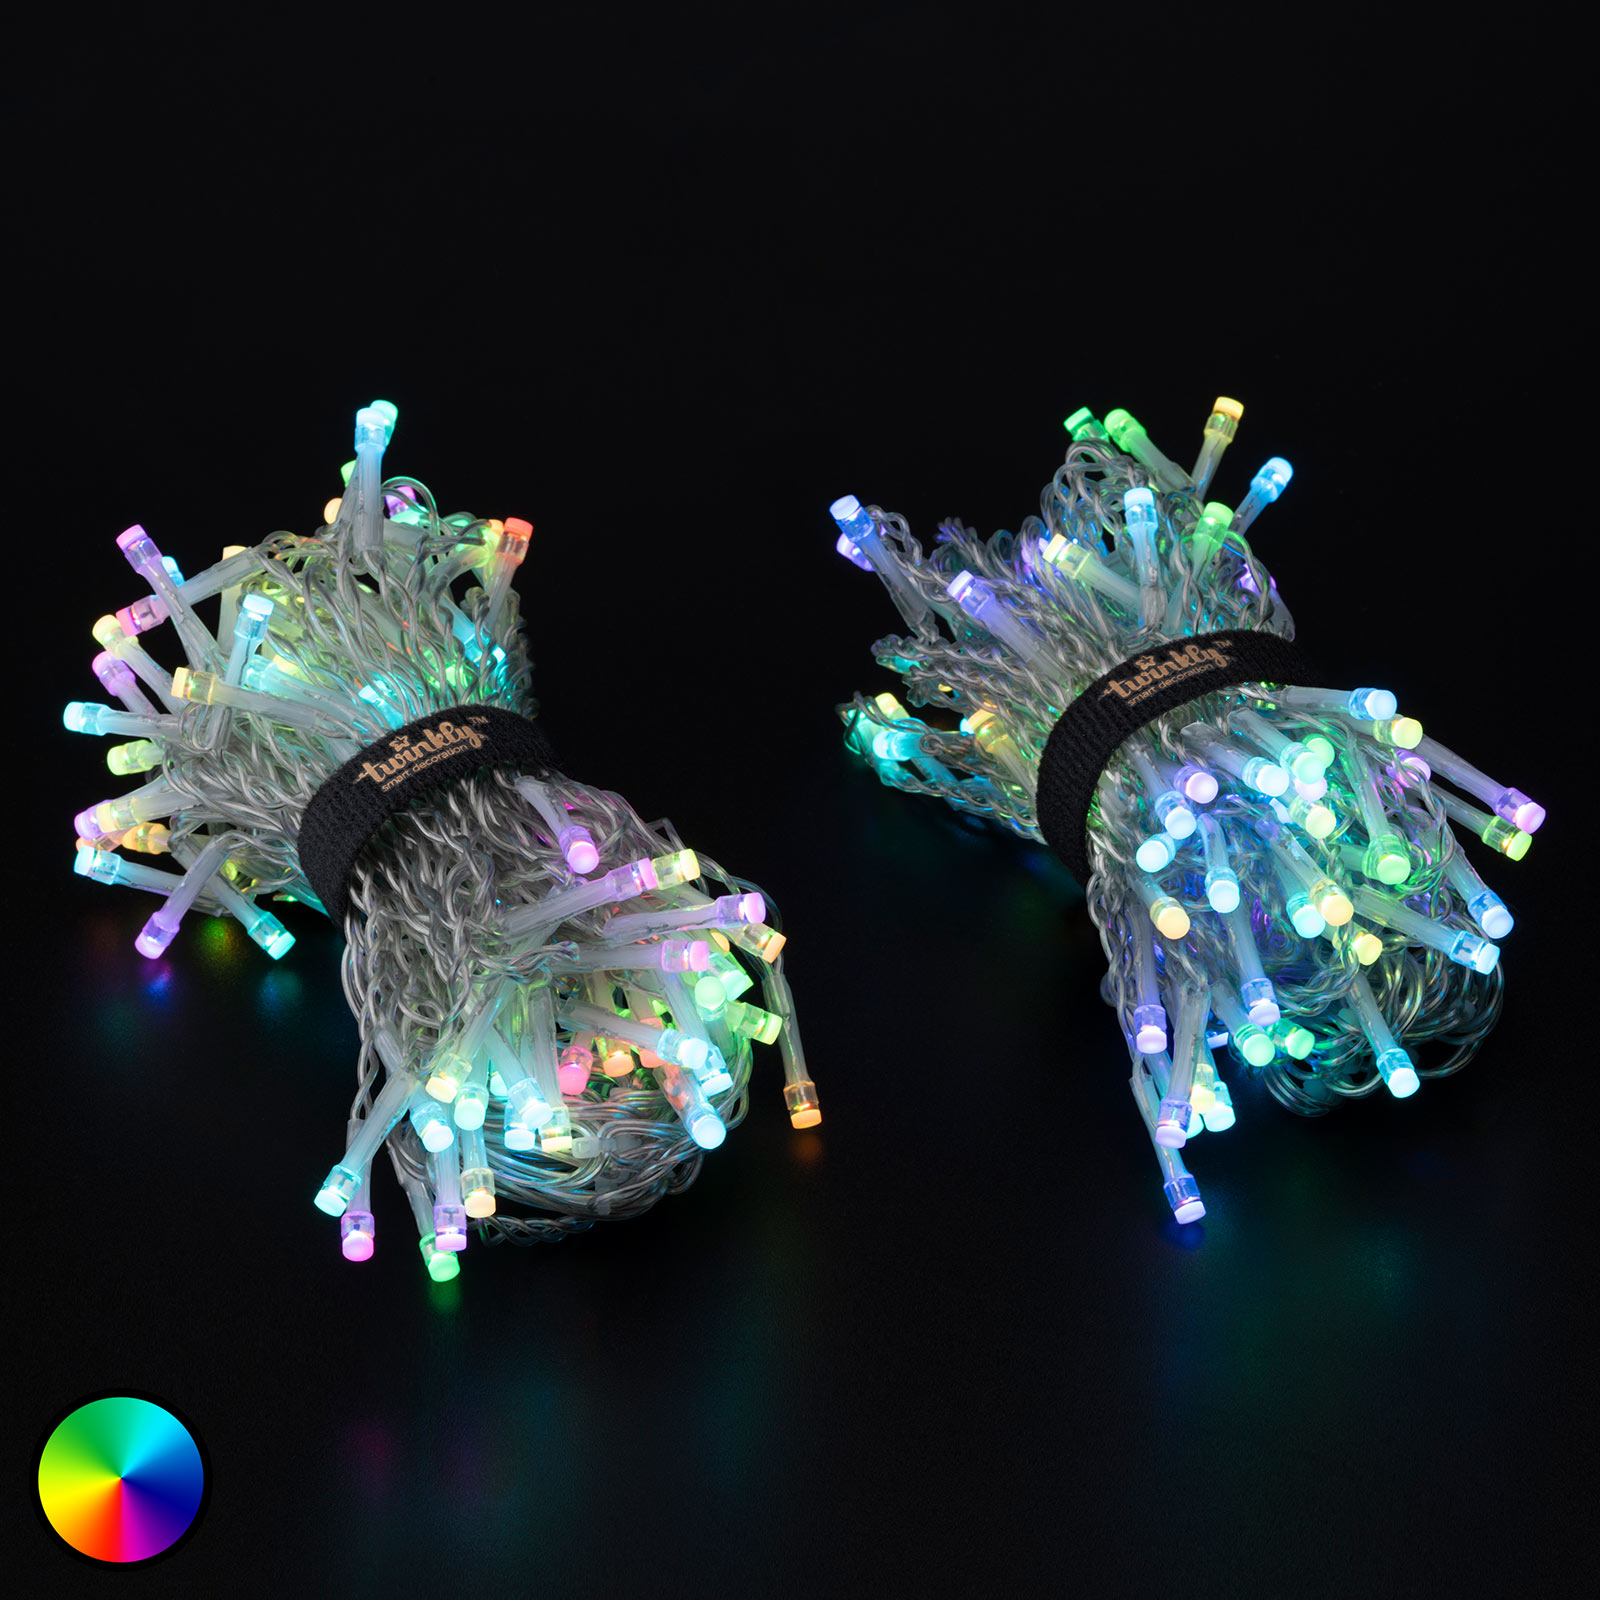 Smart LED-lysforheng Twinkly for app, RGB